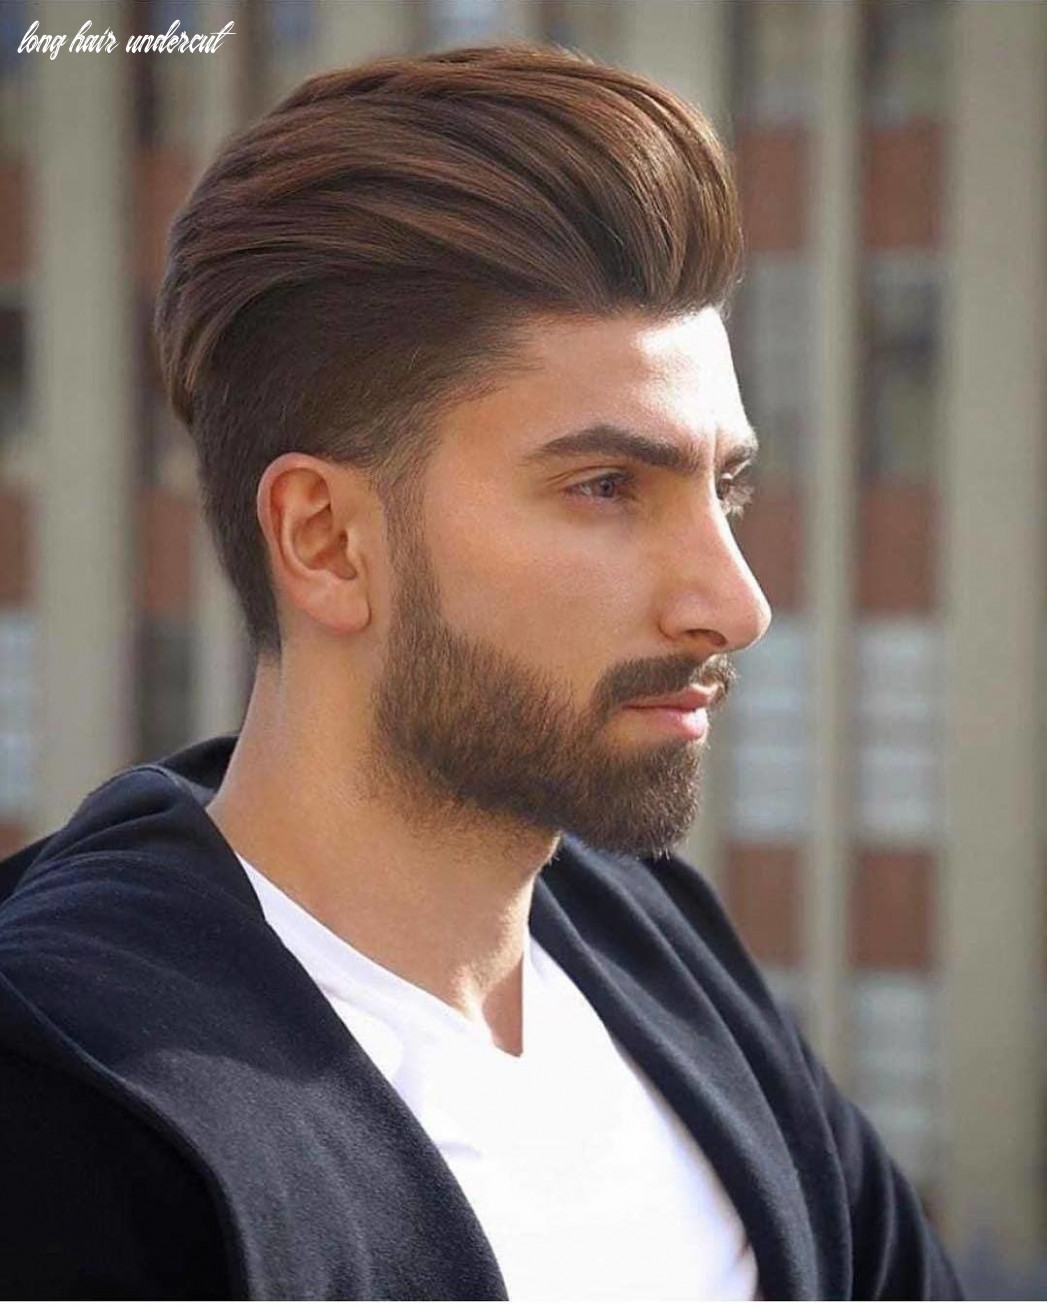 10 cool undercut hairstyles for men | undercut hairstyles, mens